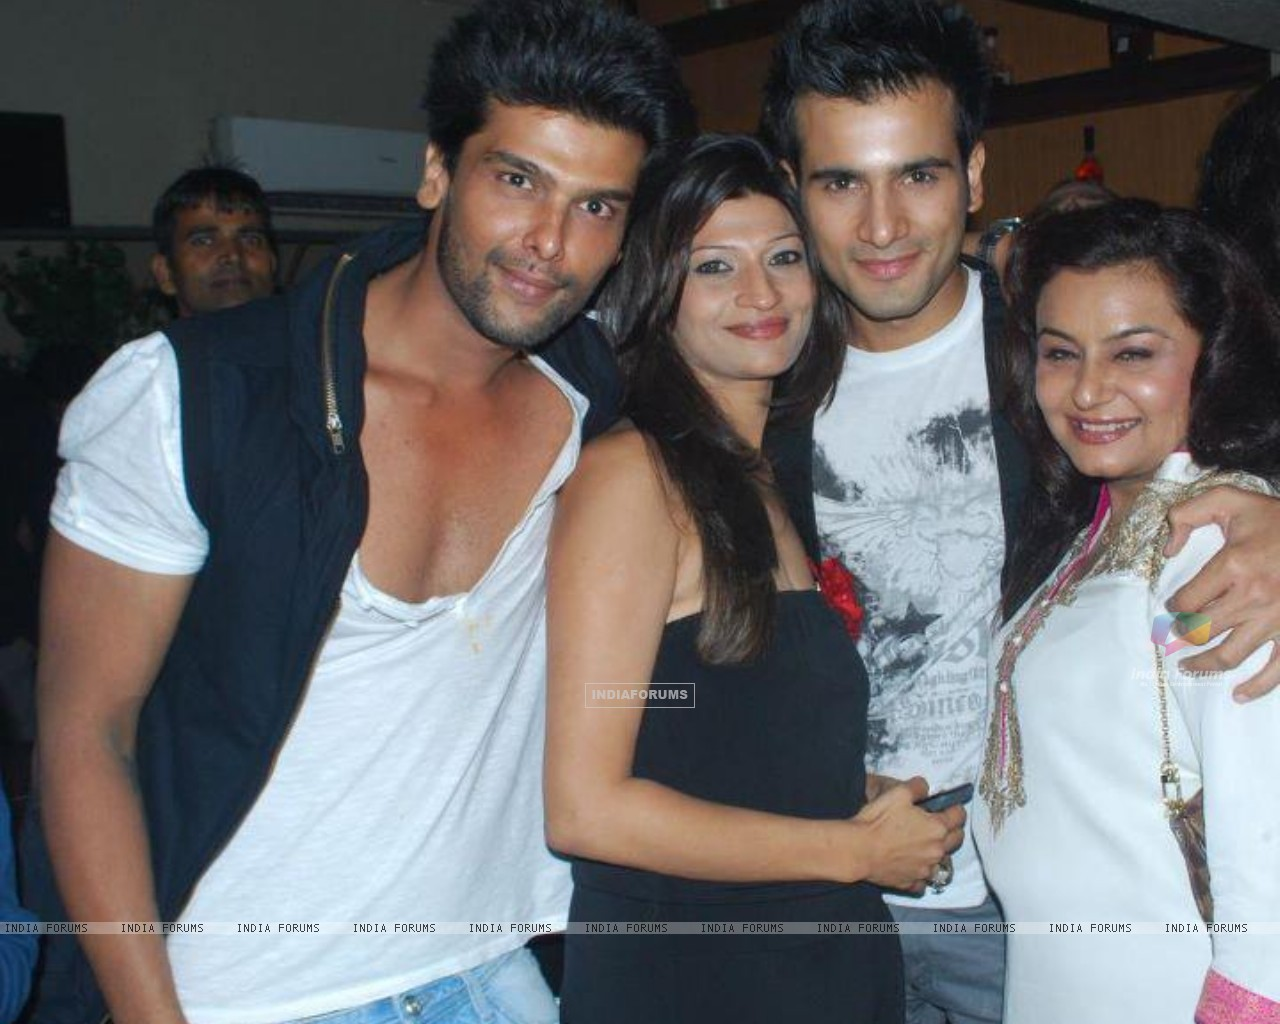 Karan Tacker , Kushal Tandon and Divyajyotee Sharma at Ek Hazaron Mein Meri Behna Hai launch party (172789) size:1280x1024